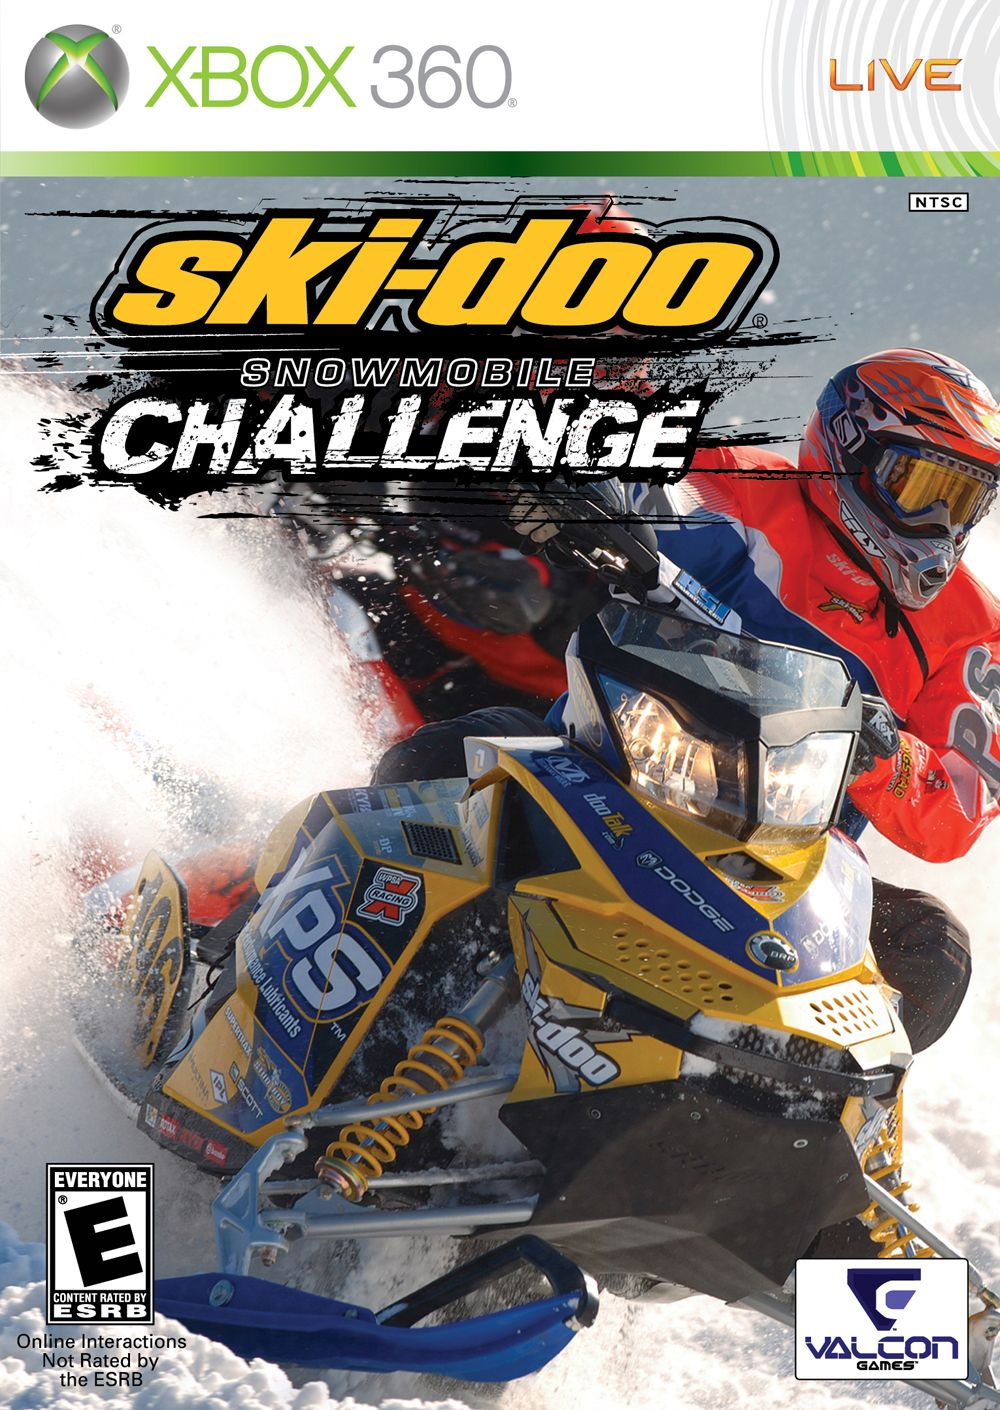 Ski Doo Snowmobile Challenge I Wish They Made A New One That Is